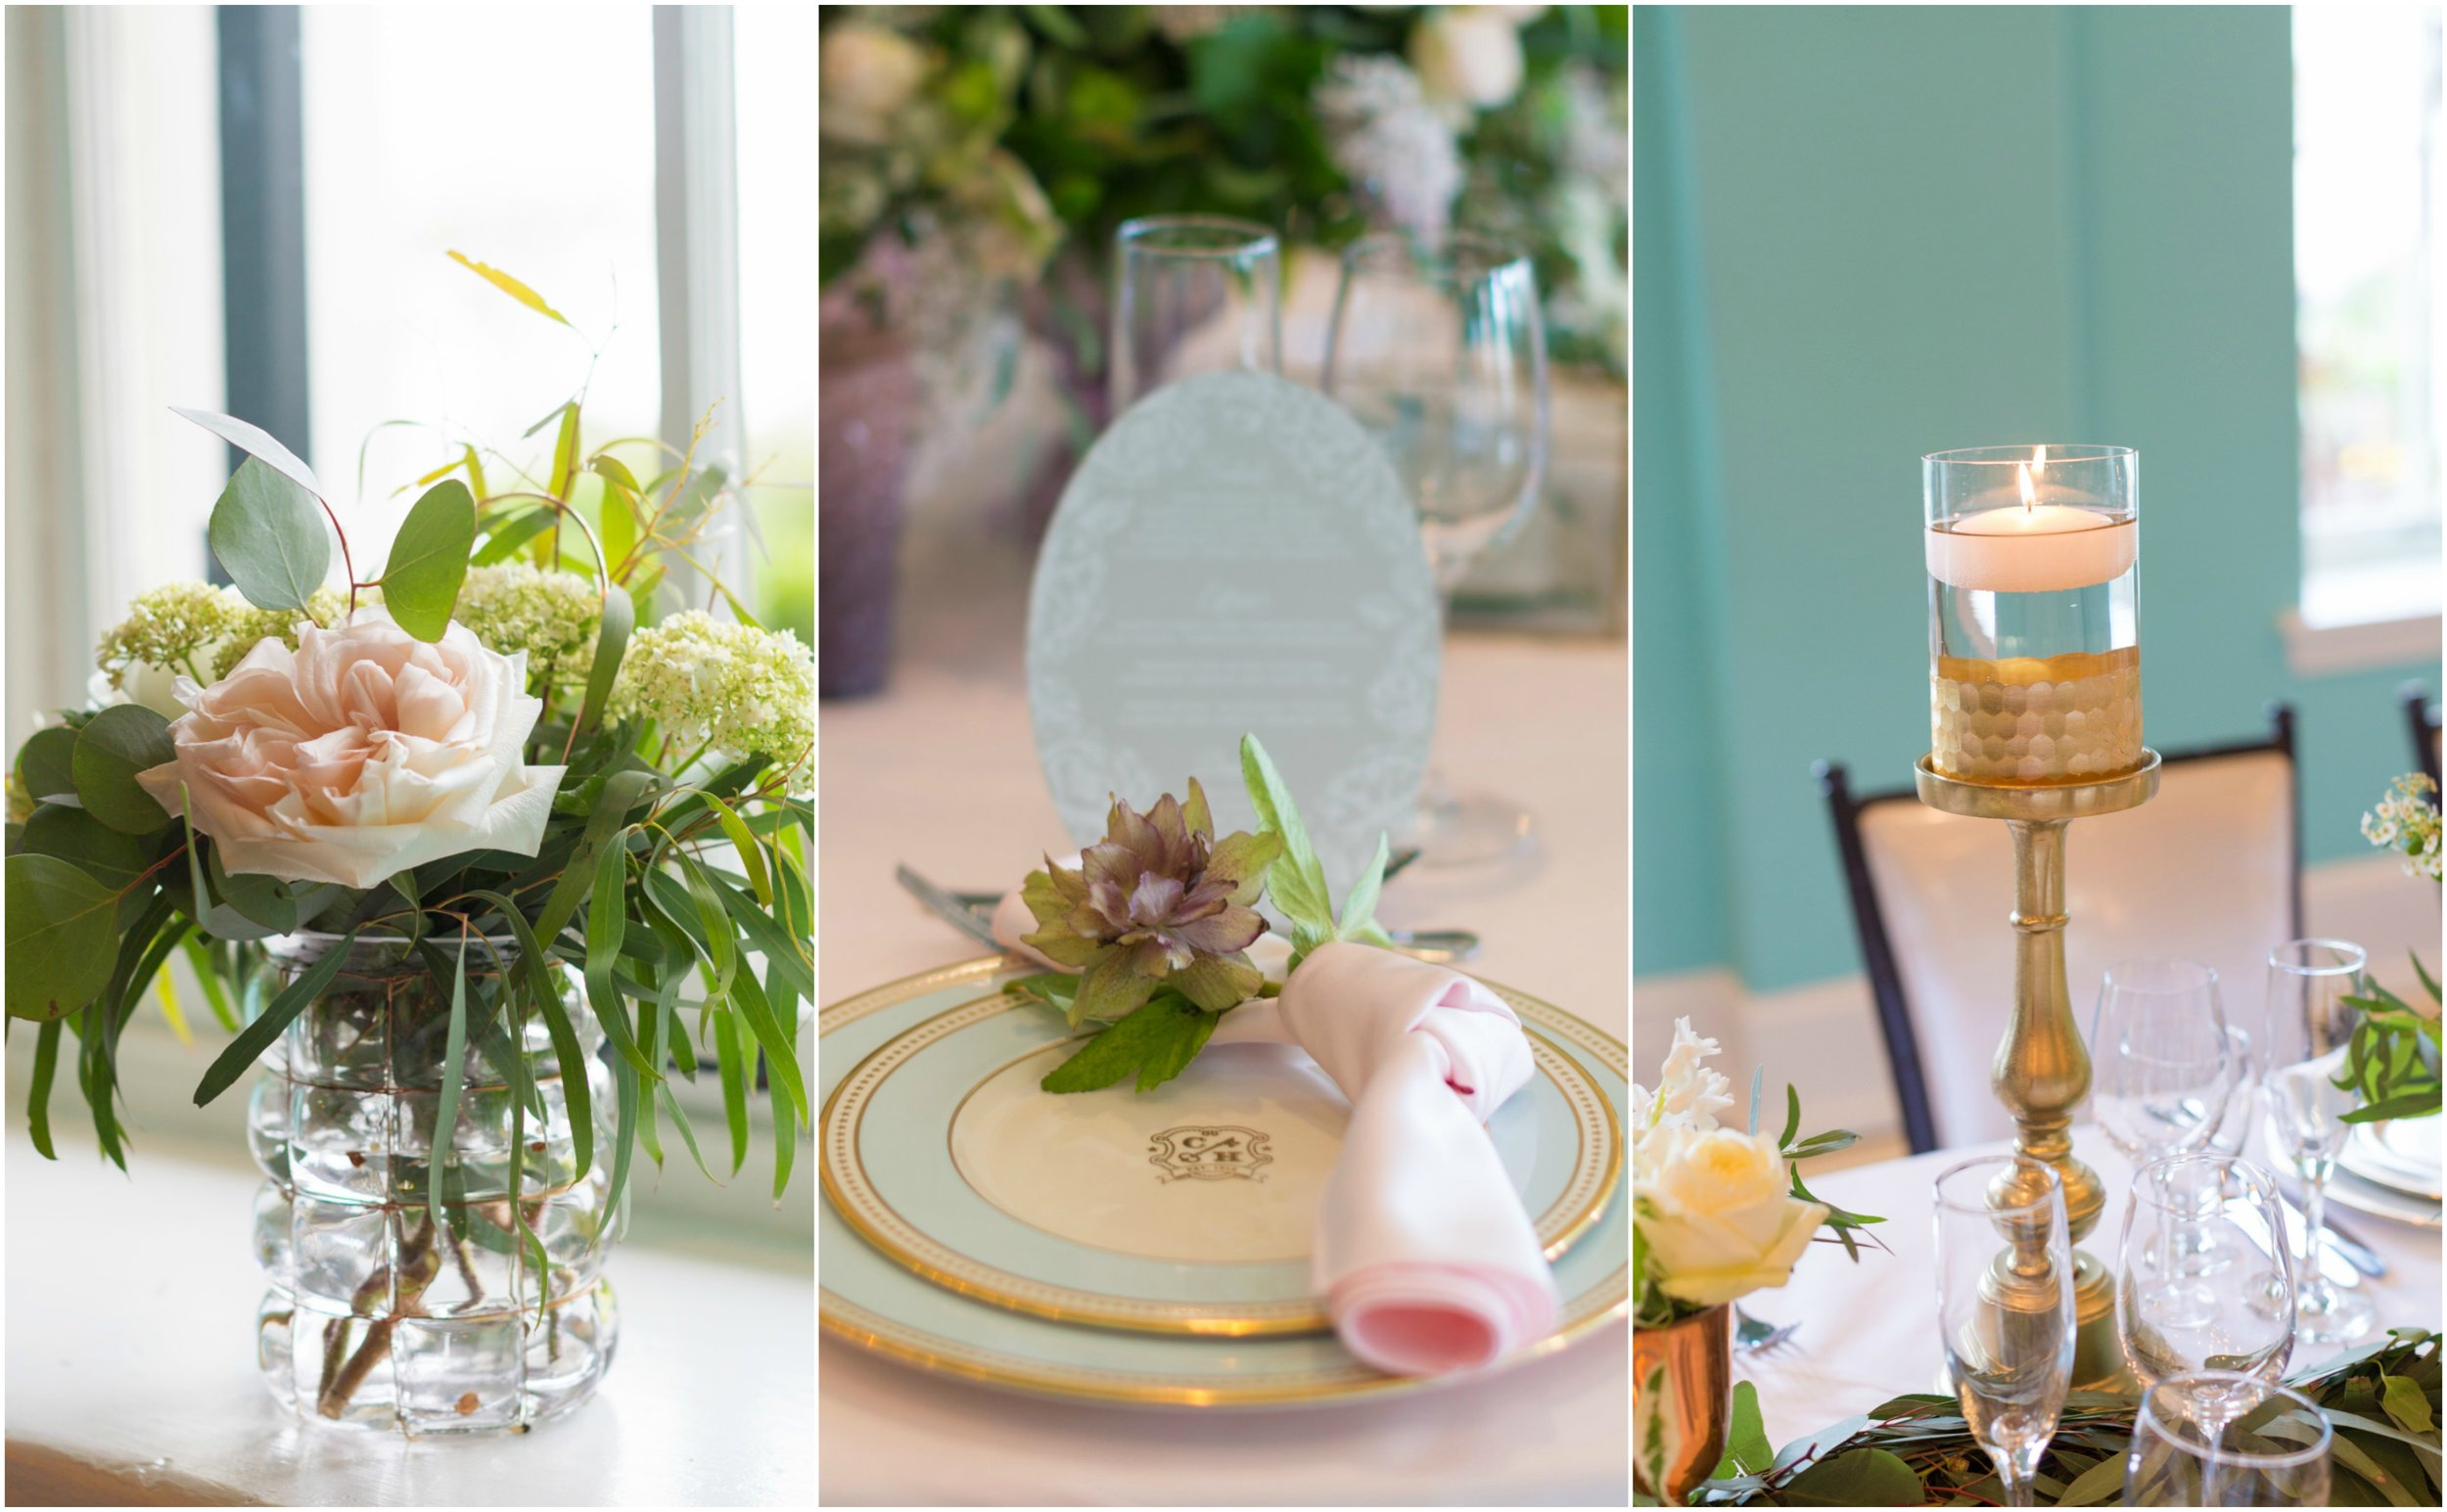 reception details by A Garden Party florist for Congress Hall photo shoot